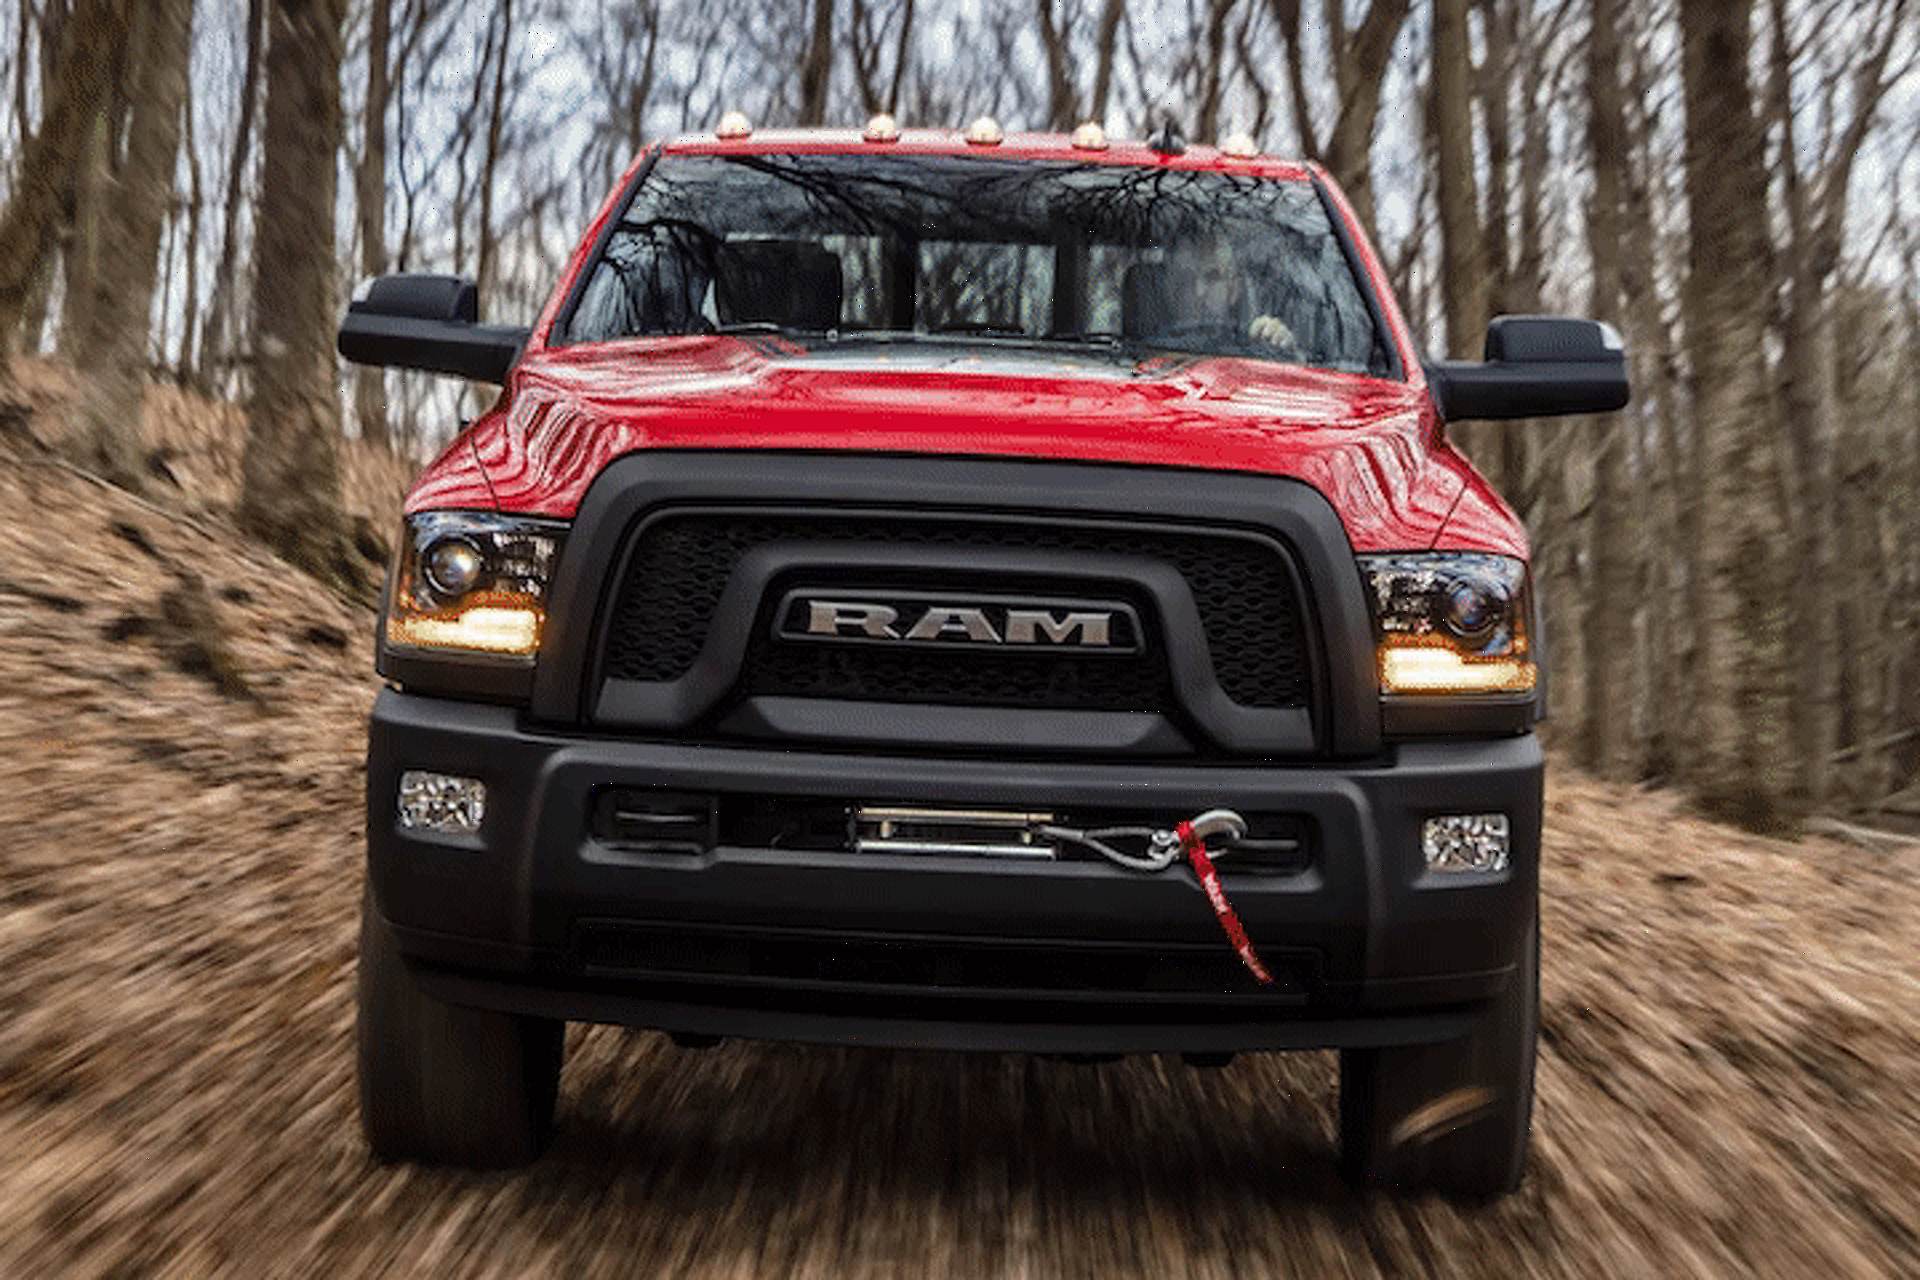 Toyota Tacoma TRD Pro and Ram Power Wagon Bring Brute Force to Chicago